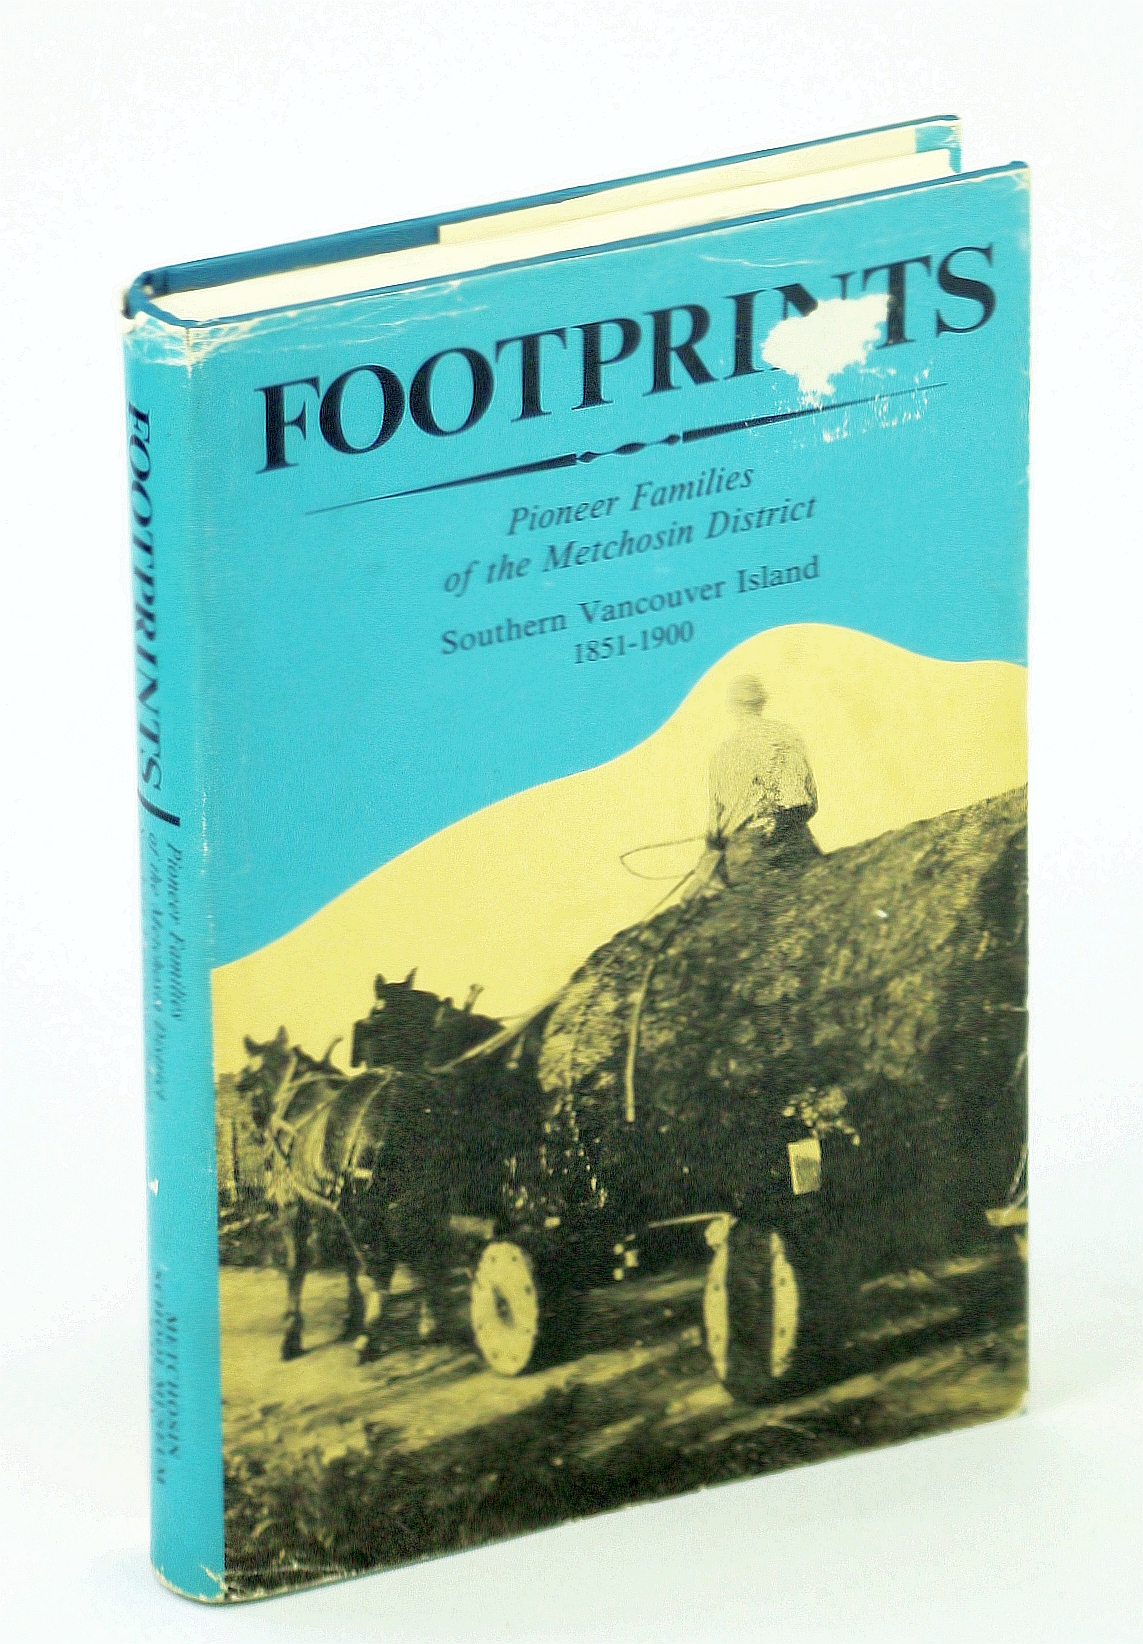 Image for Footprints : Pioneer Families of the Metchosin District Southern Vancouver Island 1851-1900